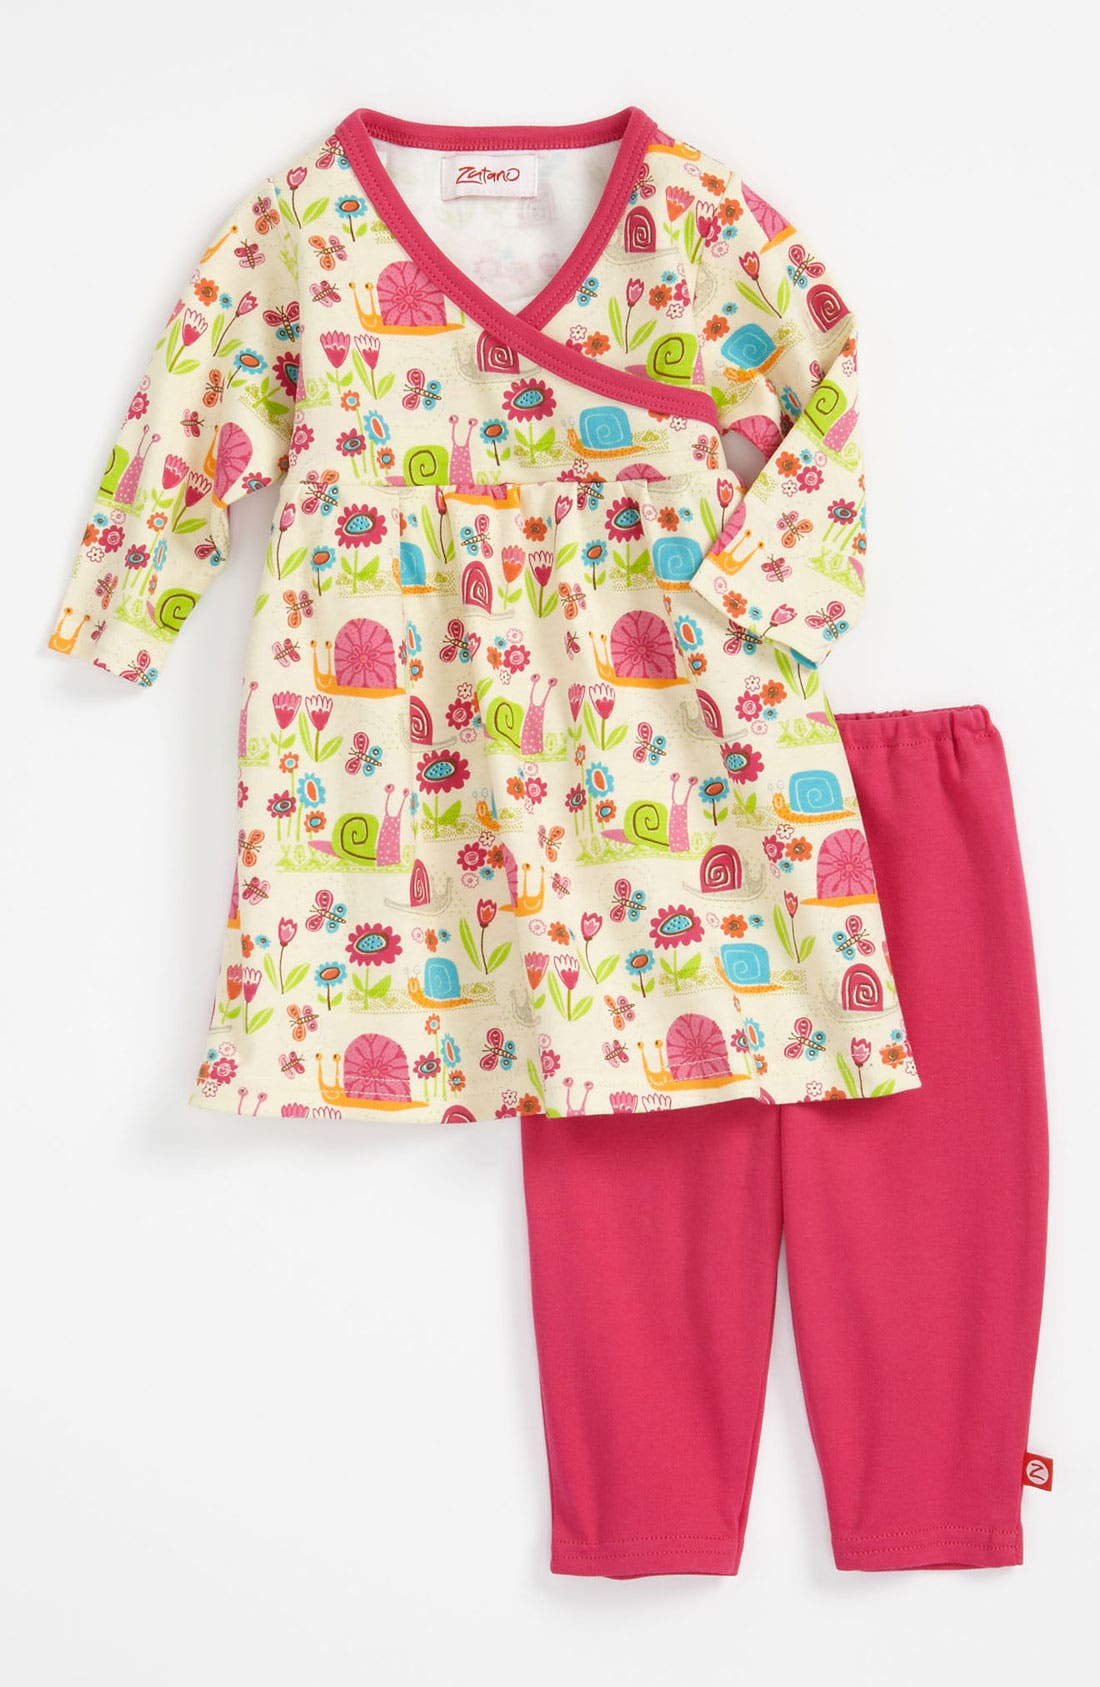 Main Image - Zutano 'Garden Snail' Dress & Leggings (Infant)